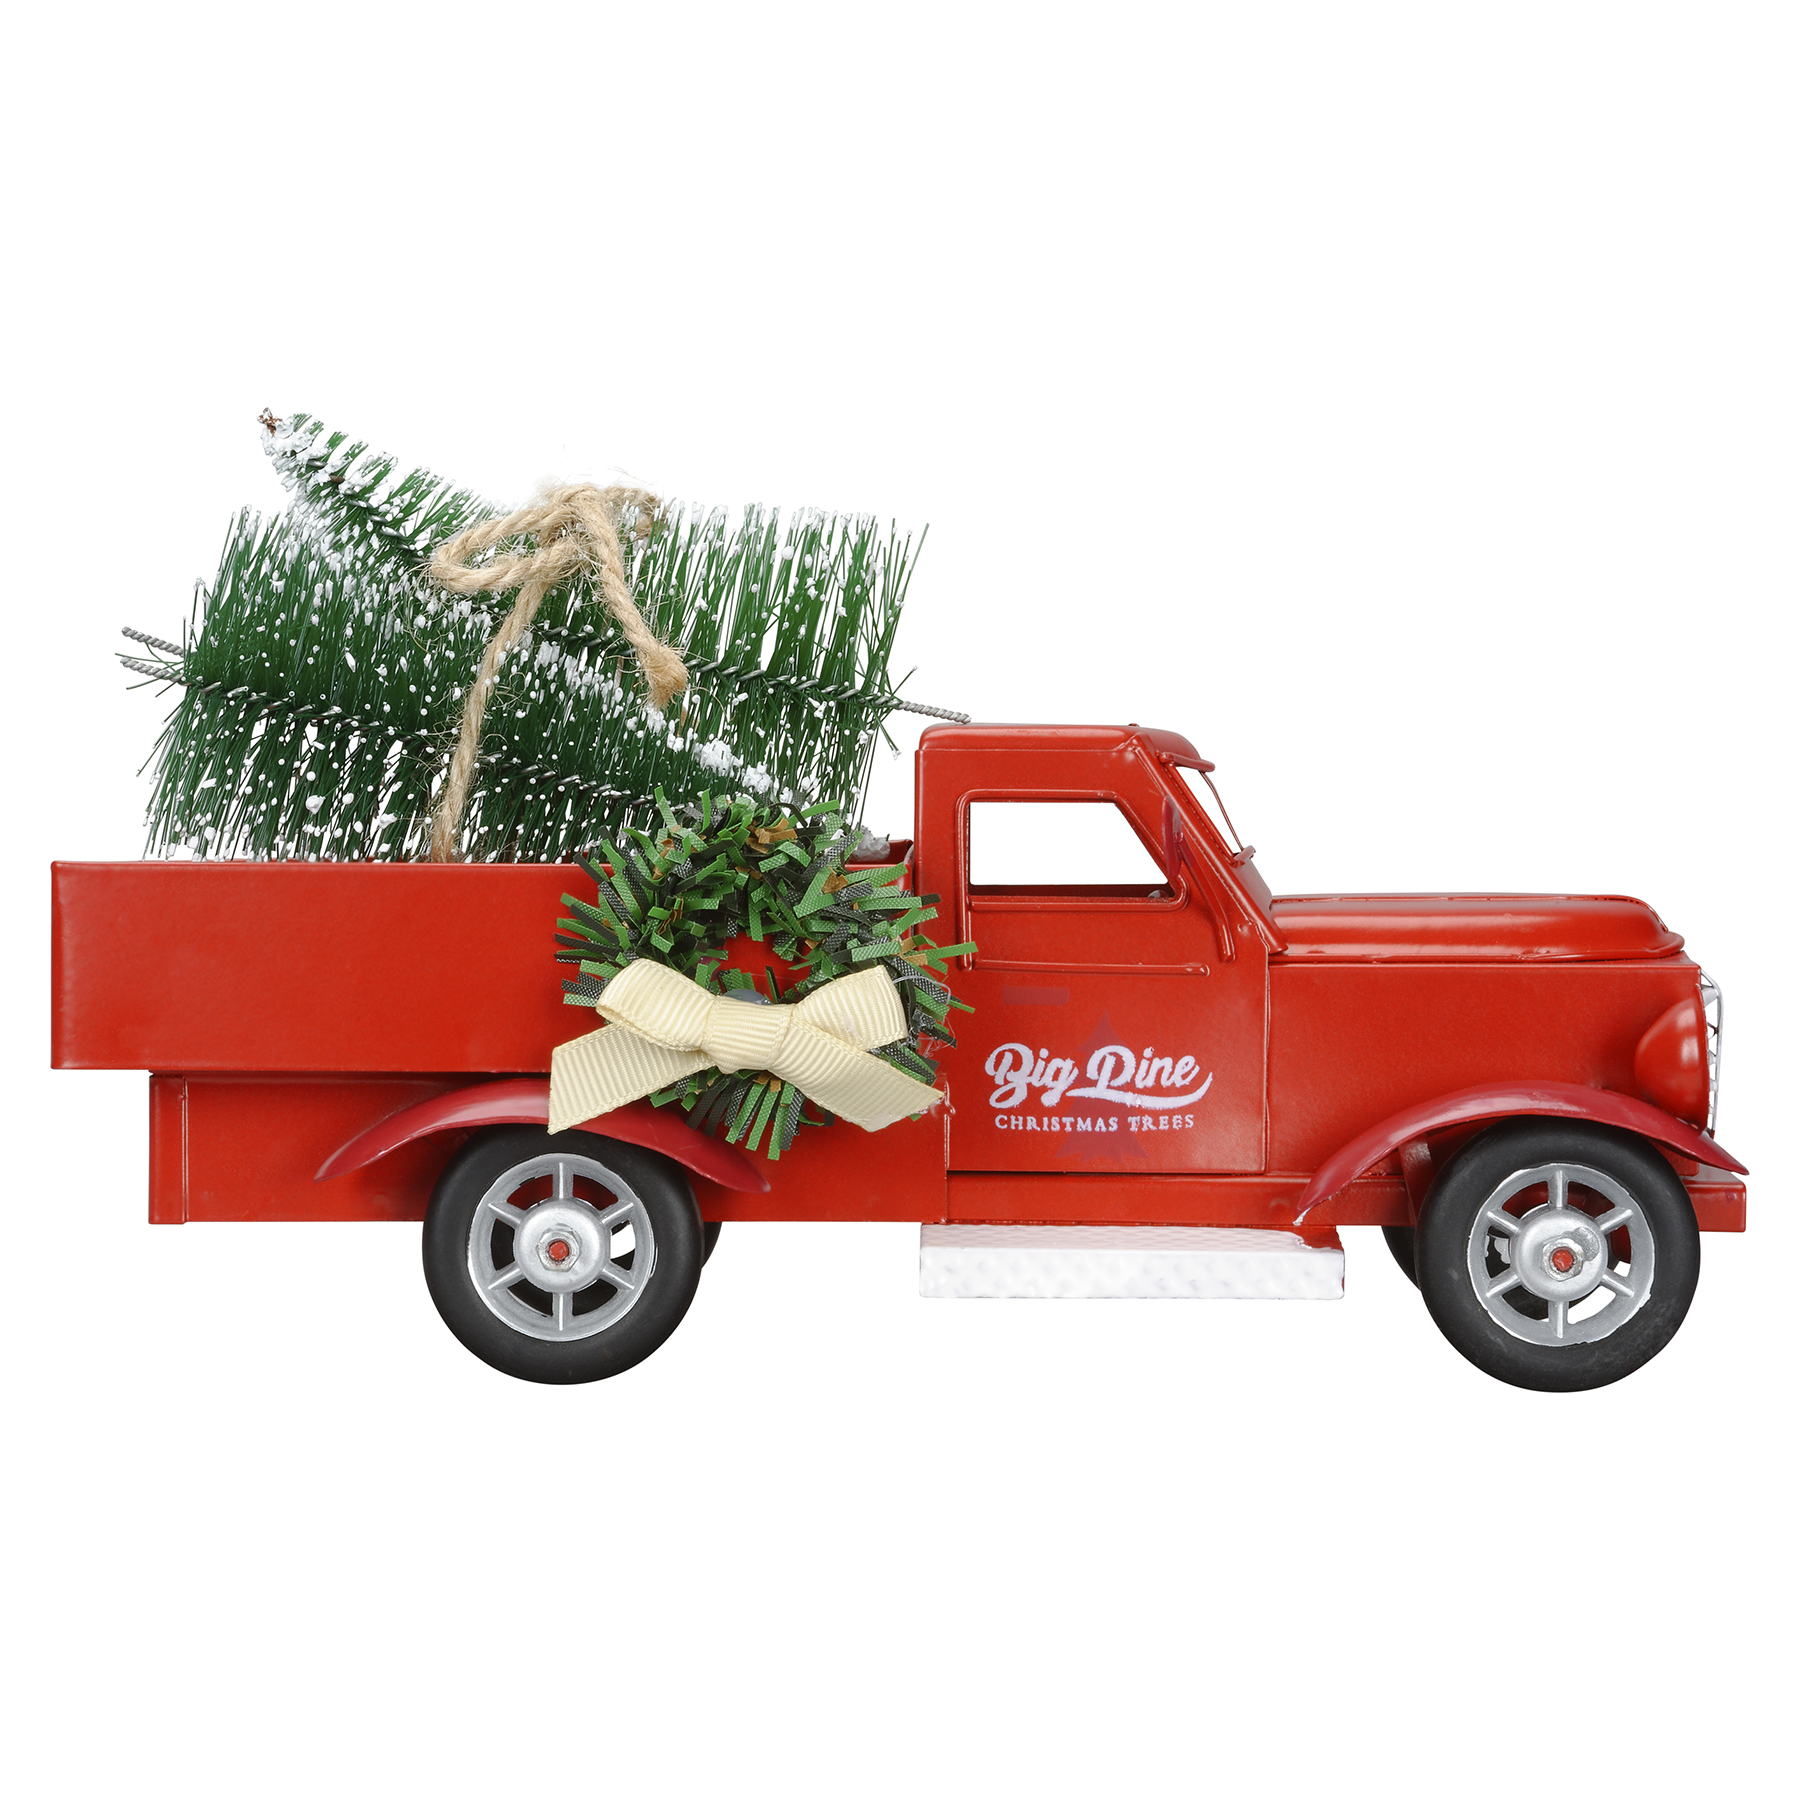 Shop for the Metal Truck with Christmas Trees By Ashland® at Michaels